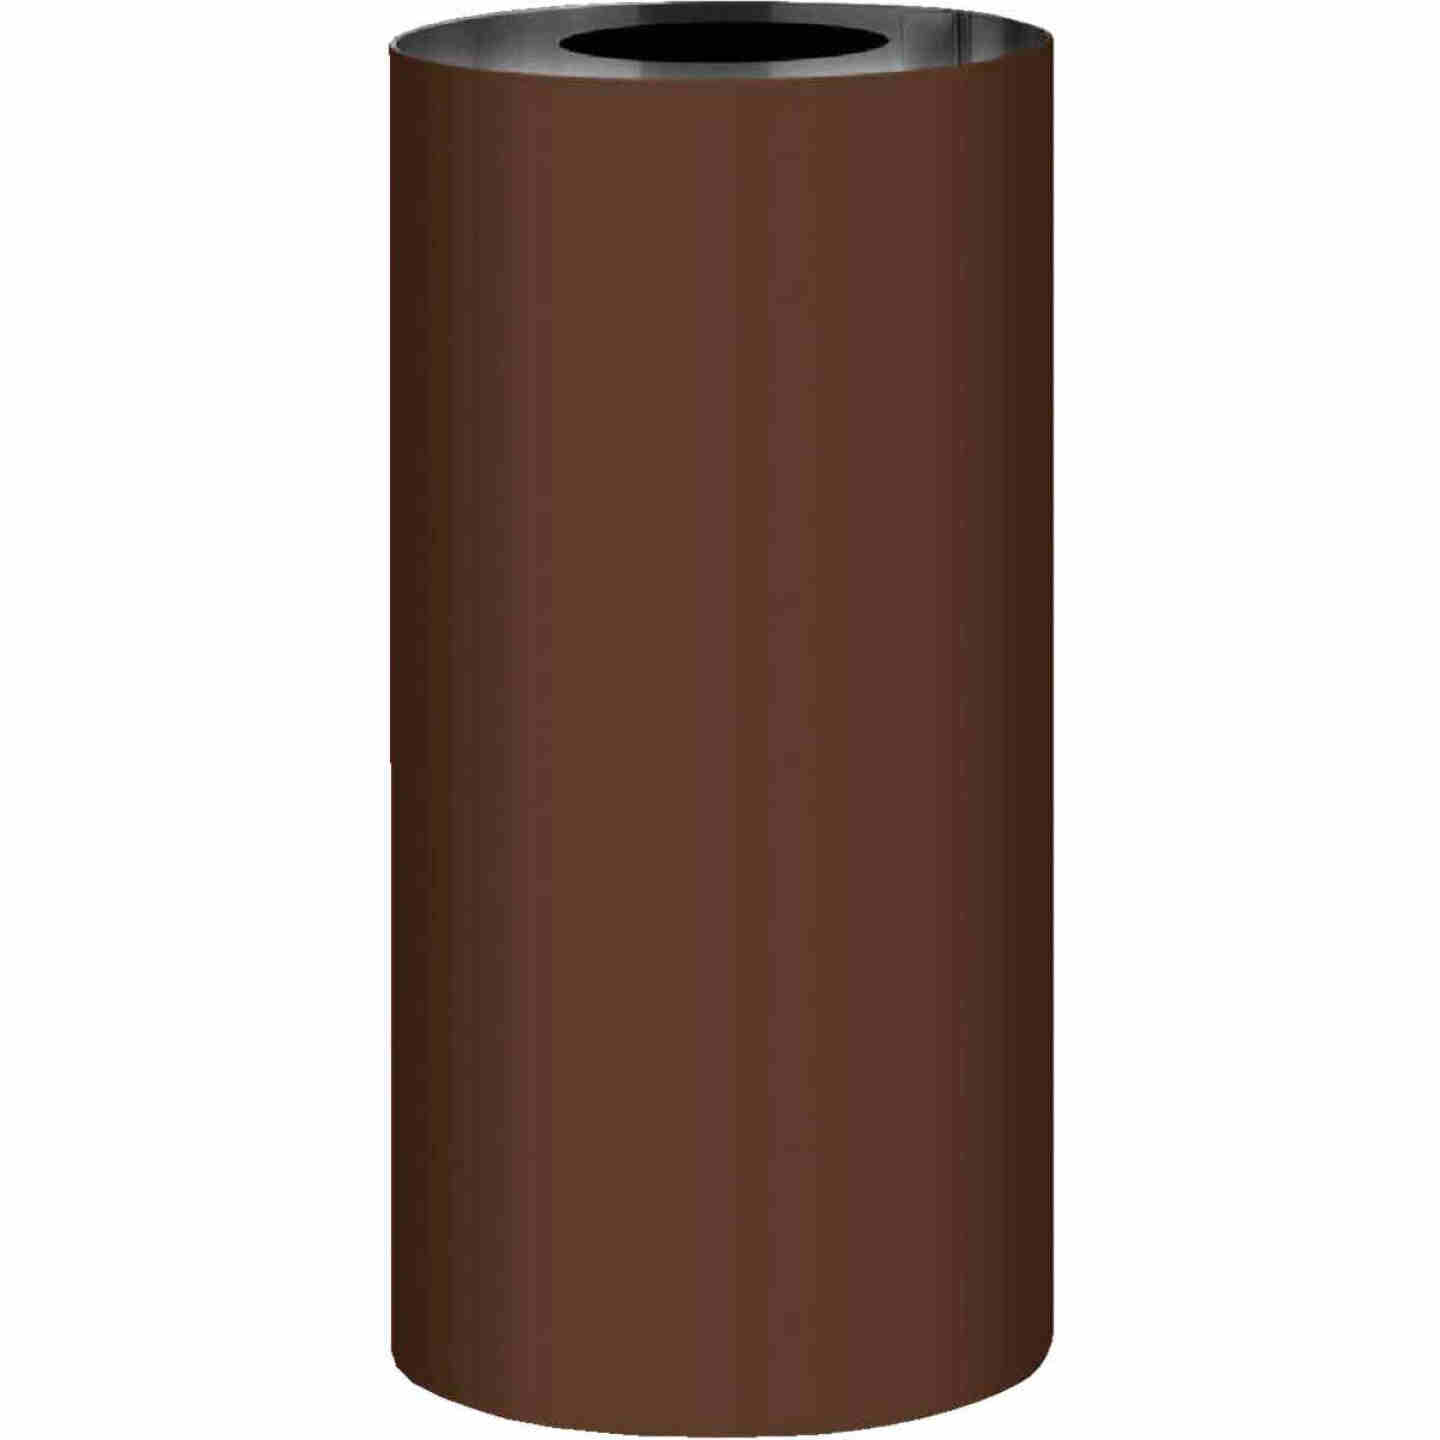 NorWesco 14 In. x 50 Ft. Brown Galvanized Roll Valley Flashing Image 1